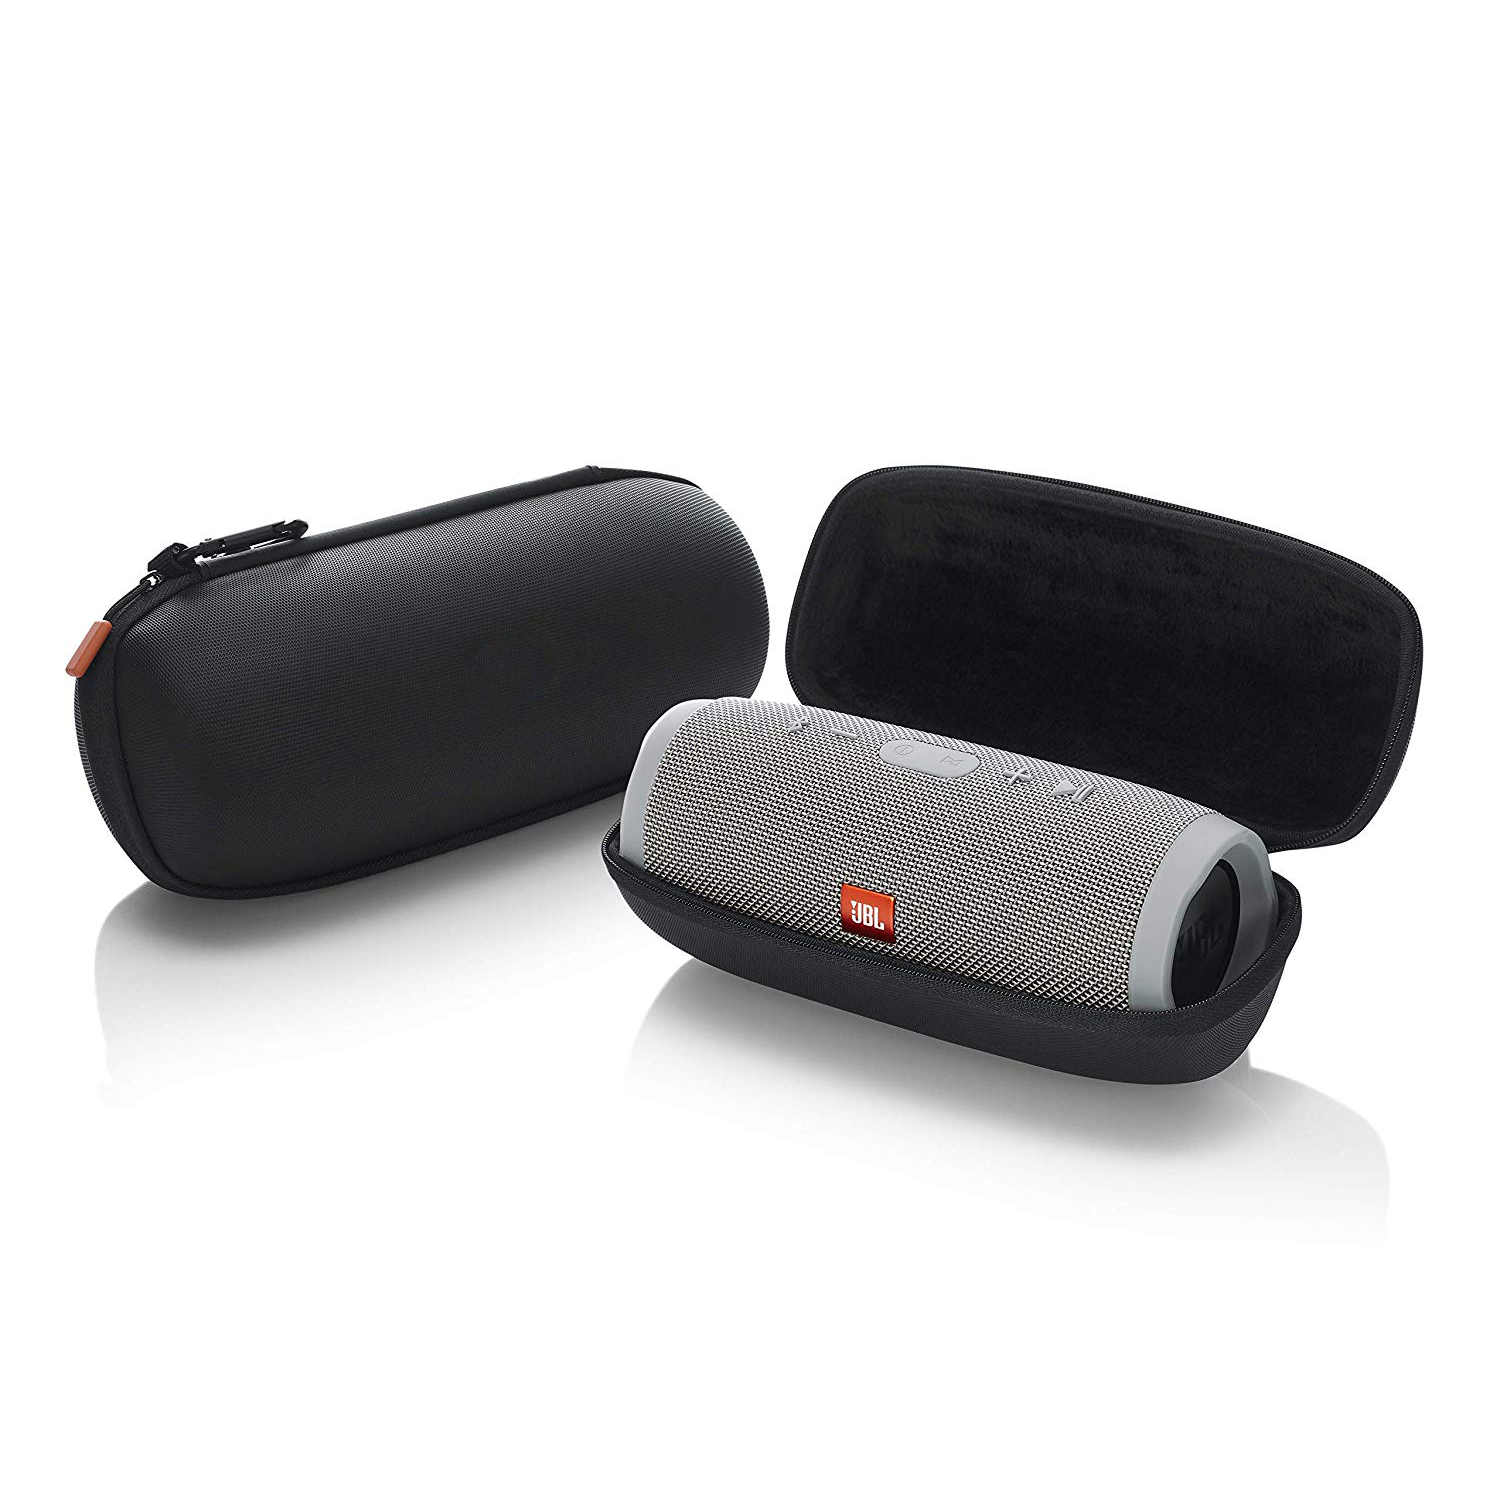 Carry Case Rugged EVA Shell With Weather Resistant Zippered Seal And Carabiner Style Clip For JBL Charge 3 Bluetooth Speaker